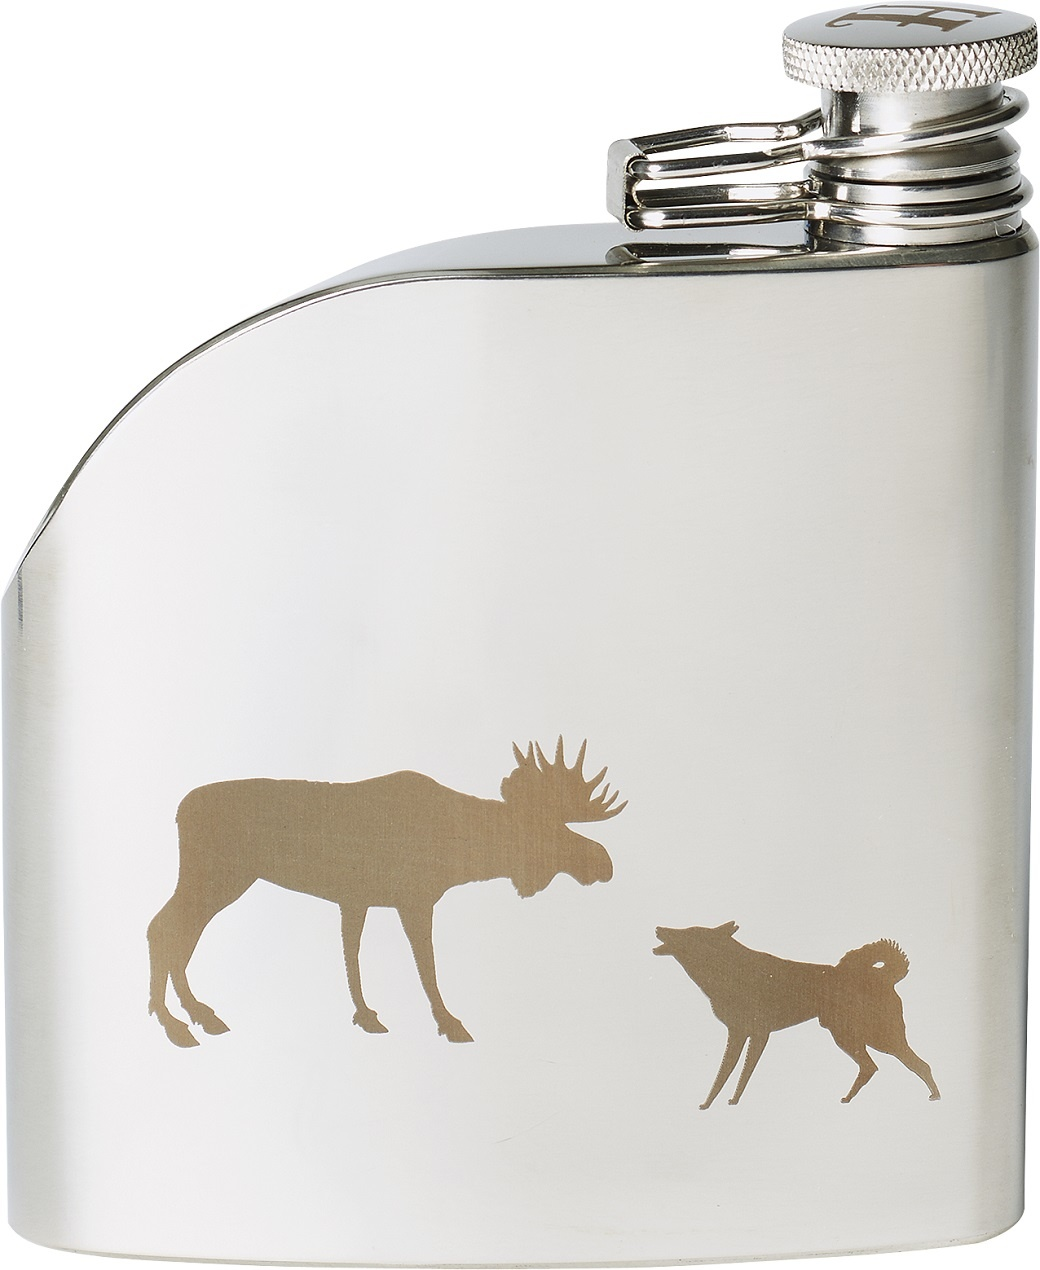 Härkila Hipflask Rectangular 175ml-1